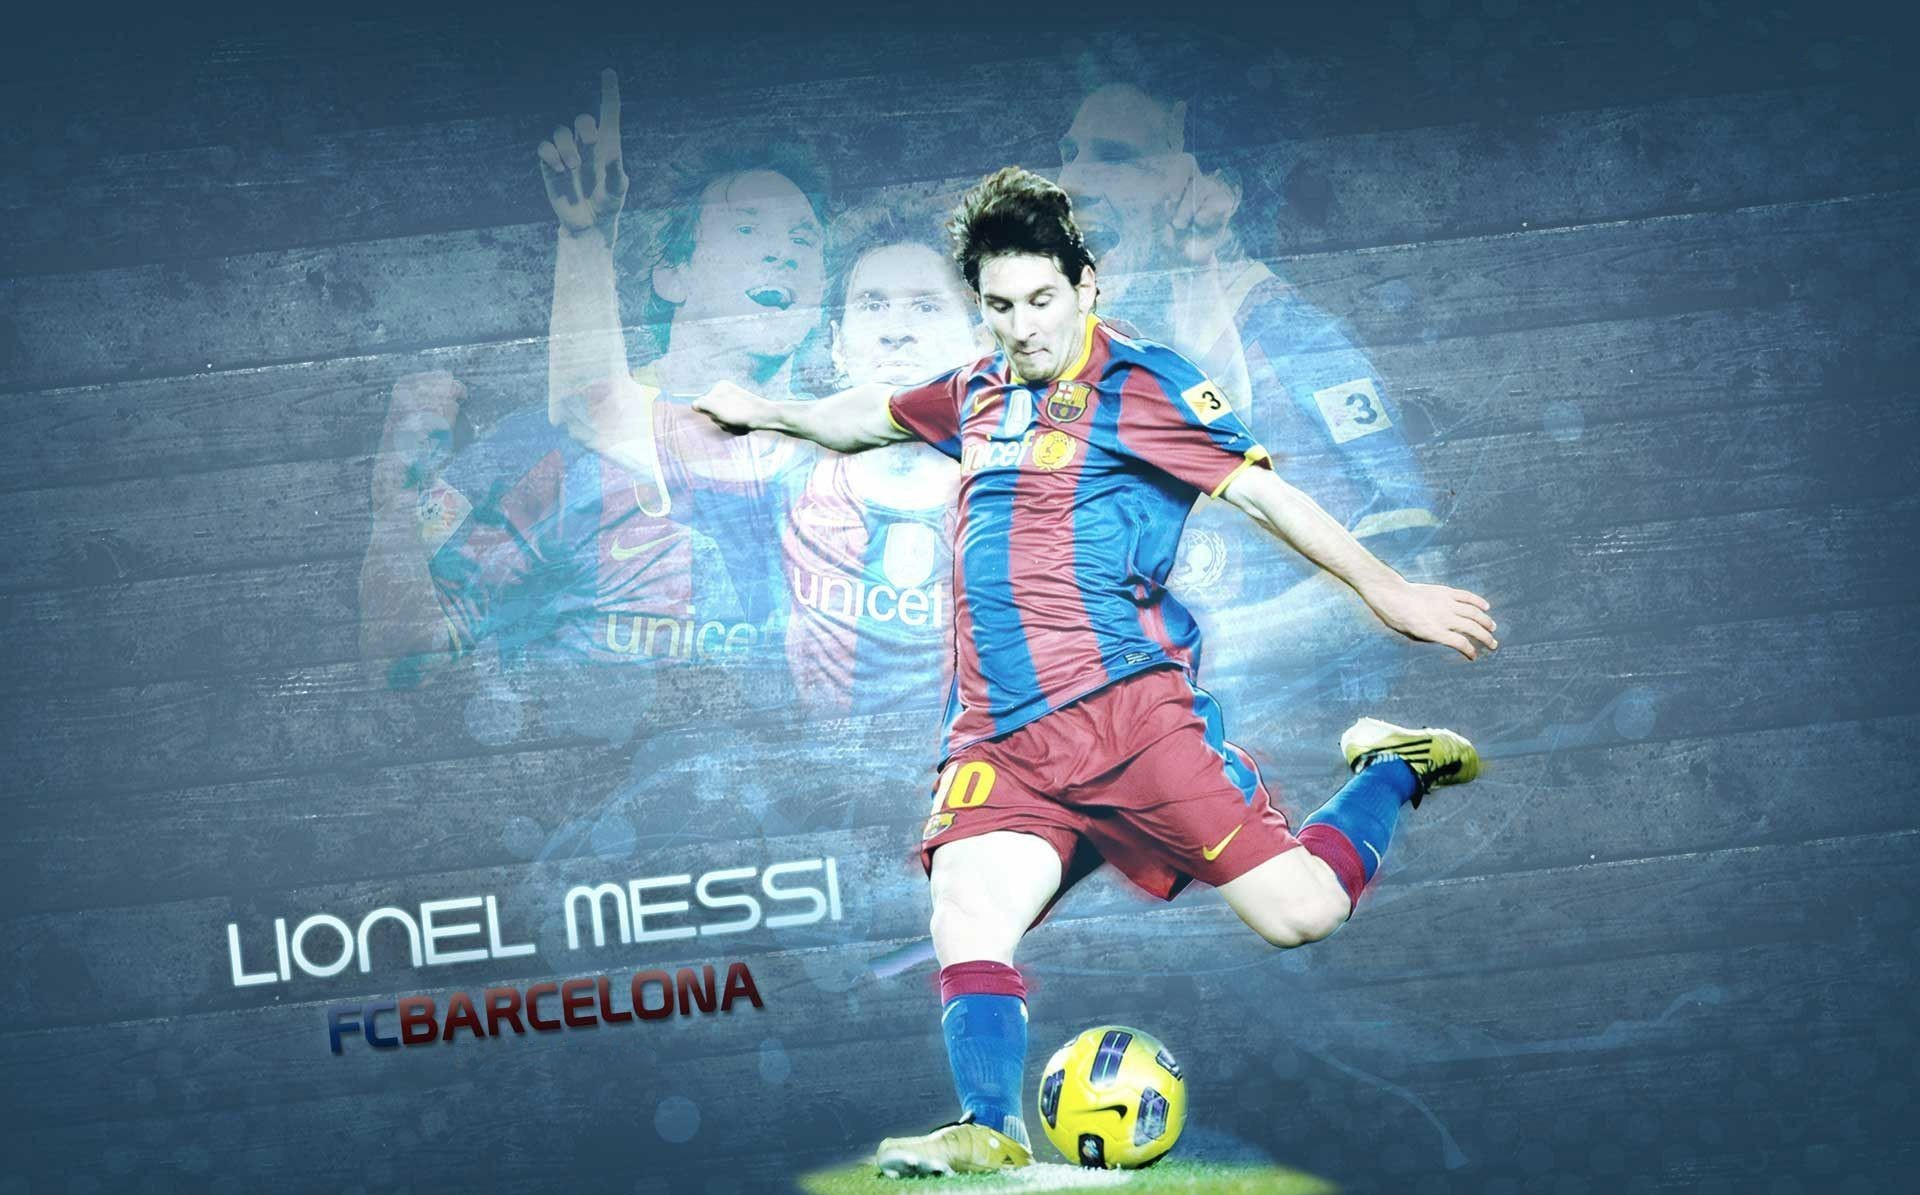 messi fc barcelona wallpaper kolpaper awesome free hd wallpapers messi fc barcelona wallpaper kolpaper